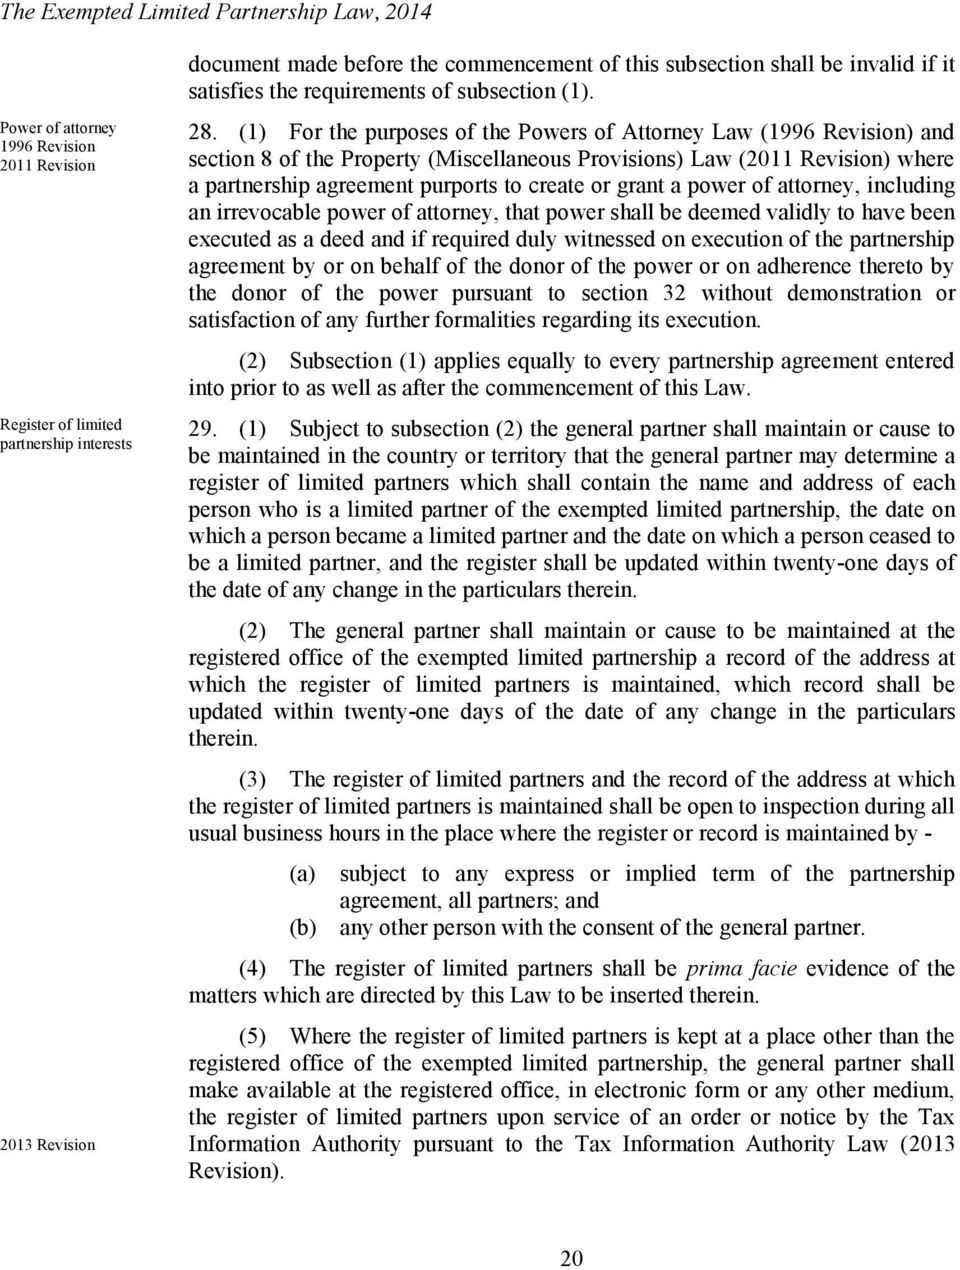 The Exempted Limited Partnership Law Pdf